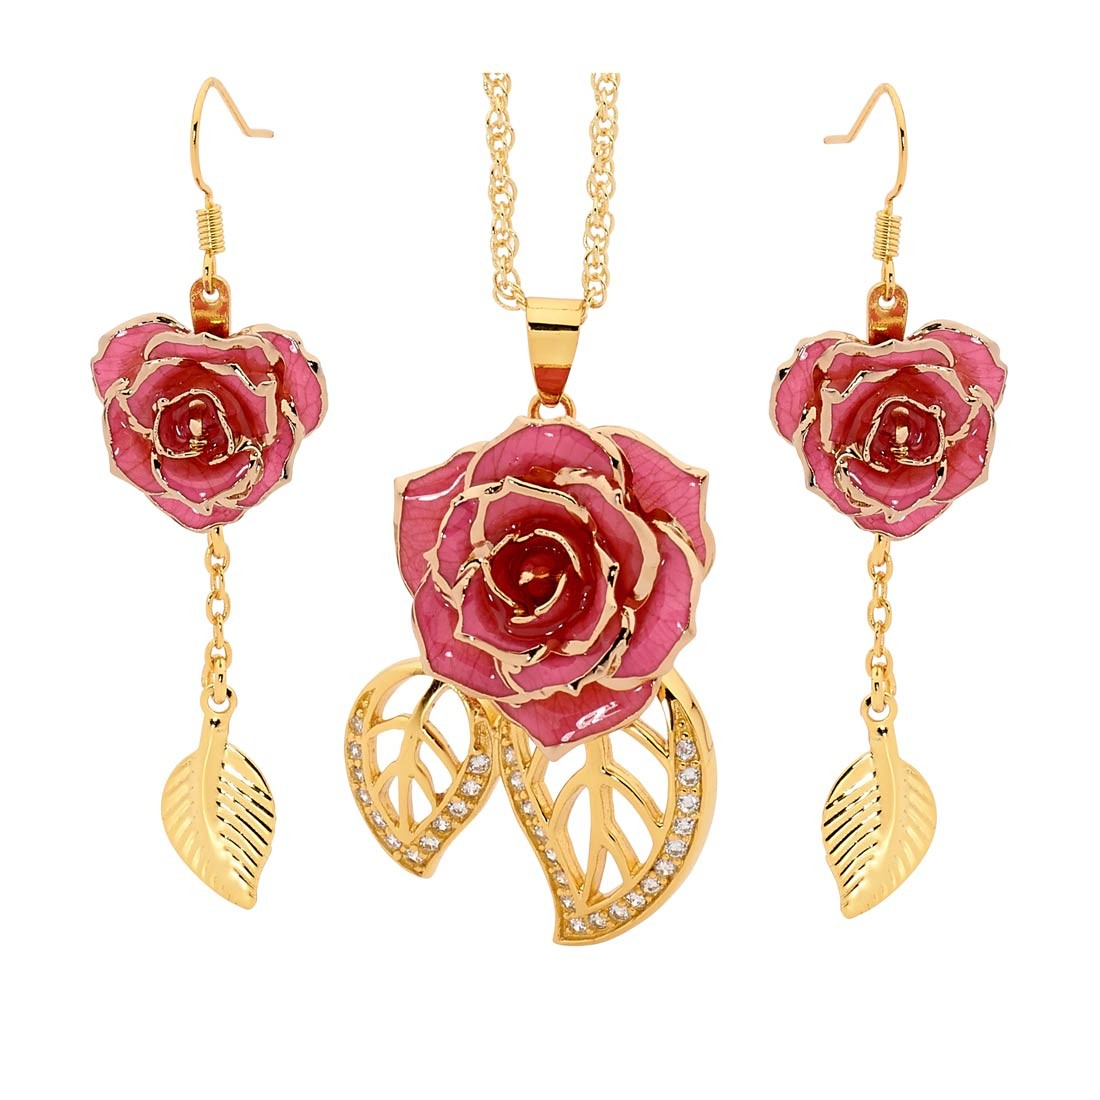 Gold Dipped Rose   Pink Matched Jewelry Set in Leaf Theme 9a694b7916